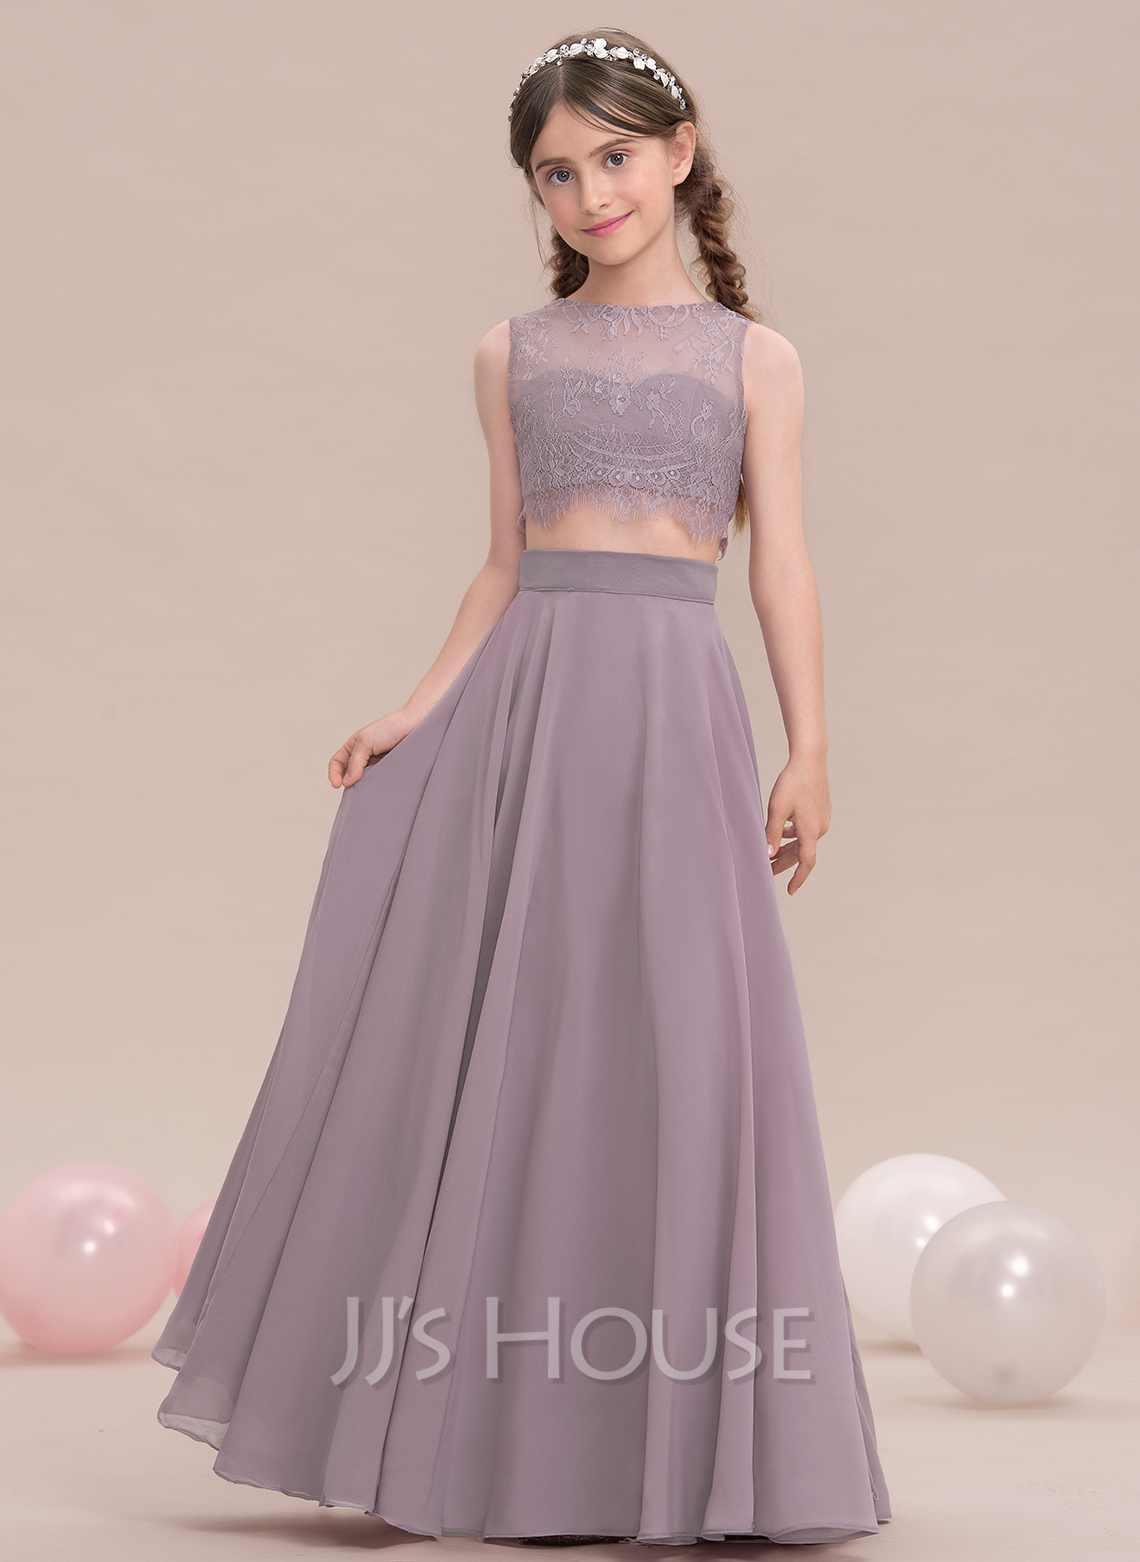 A LinePrincess Scoop Neck Floor Length Chiffon Junior